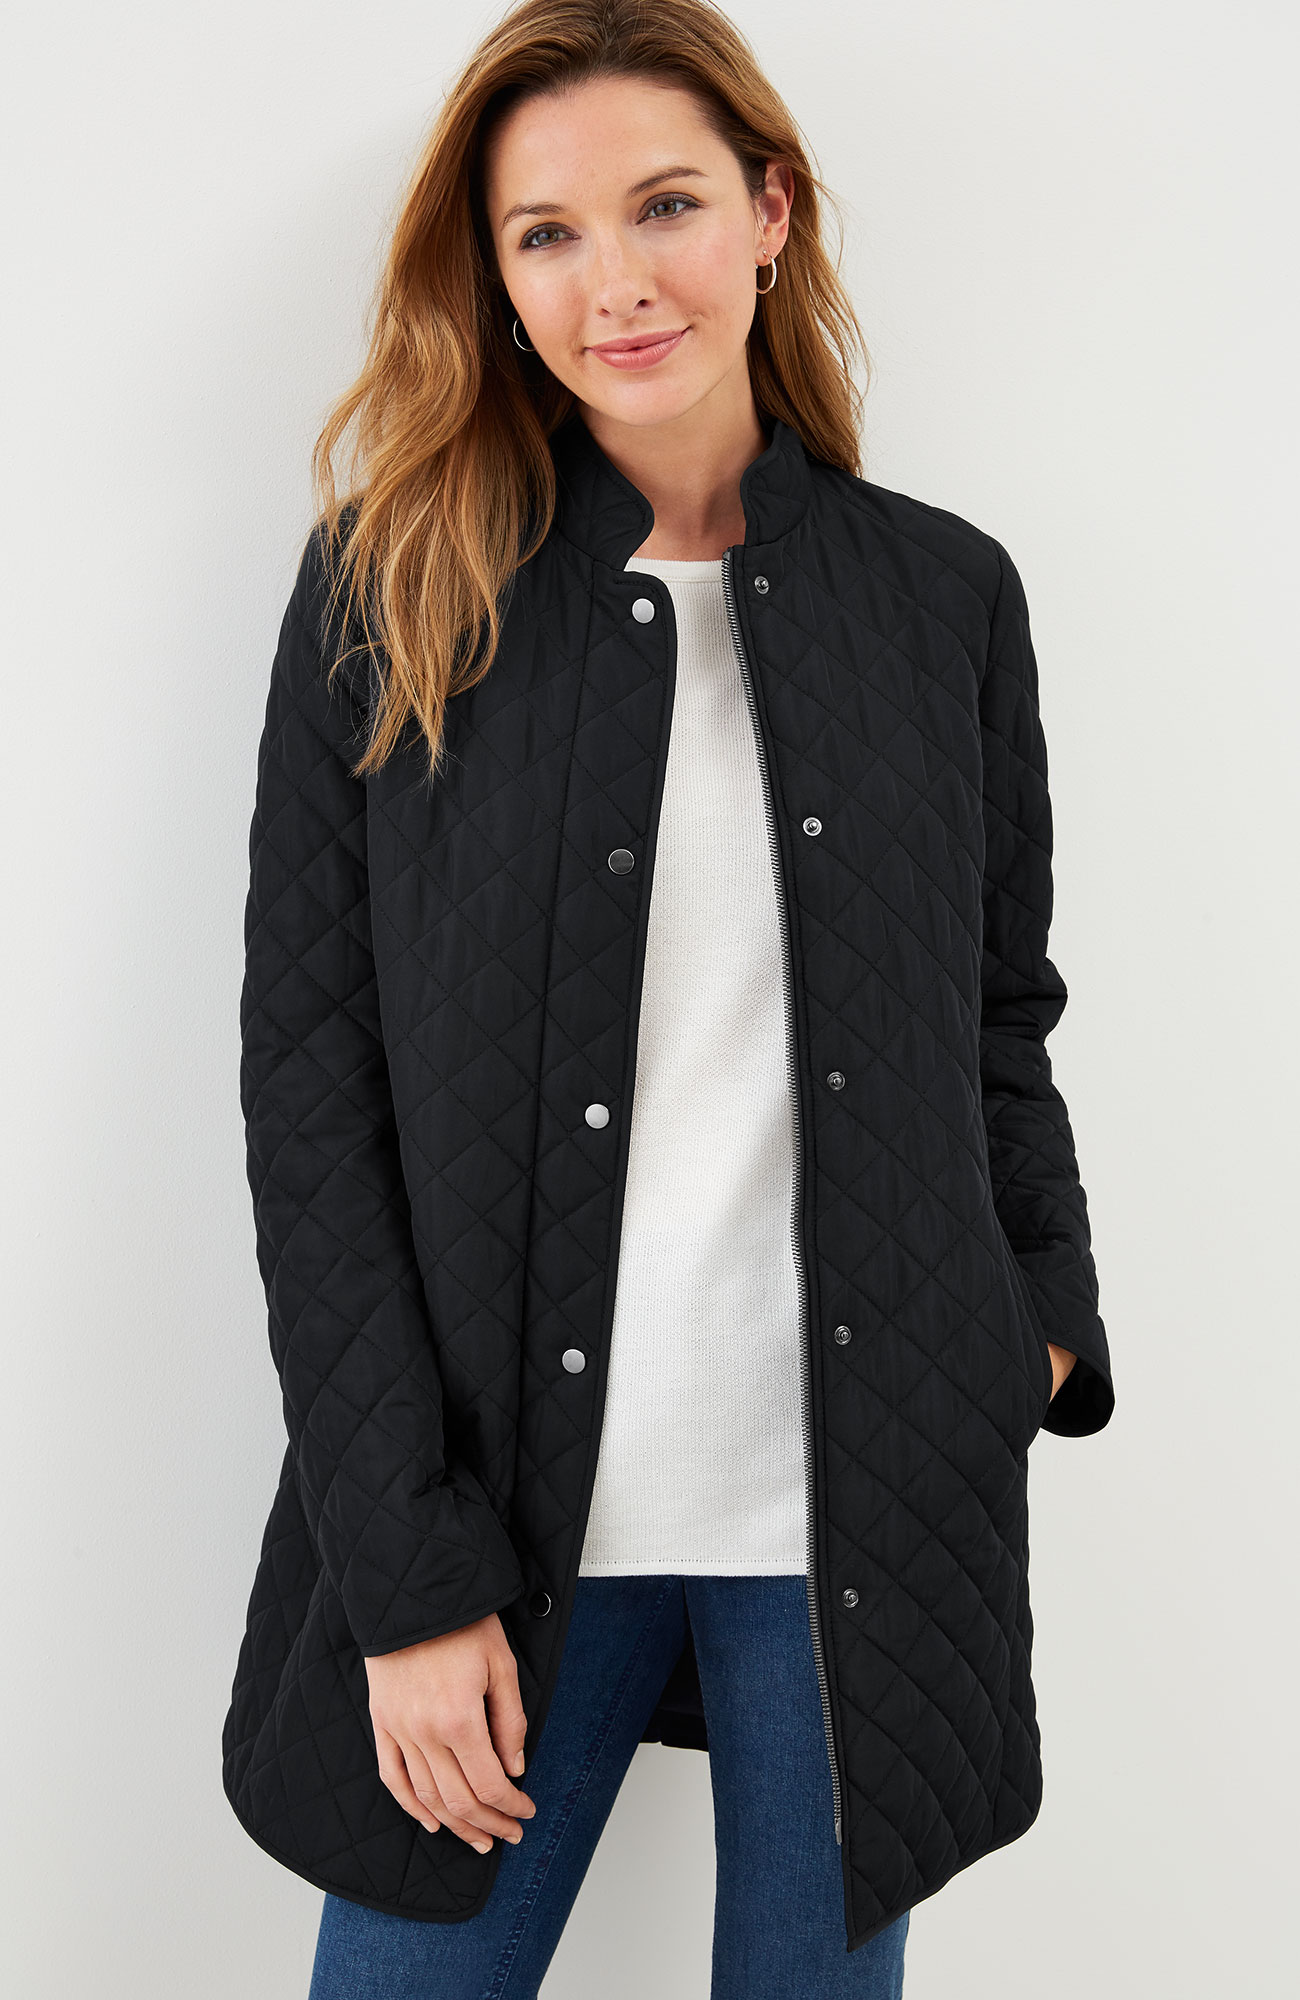 diamond-quilted zip-front jacket